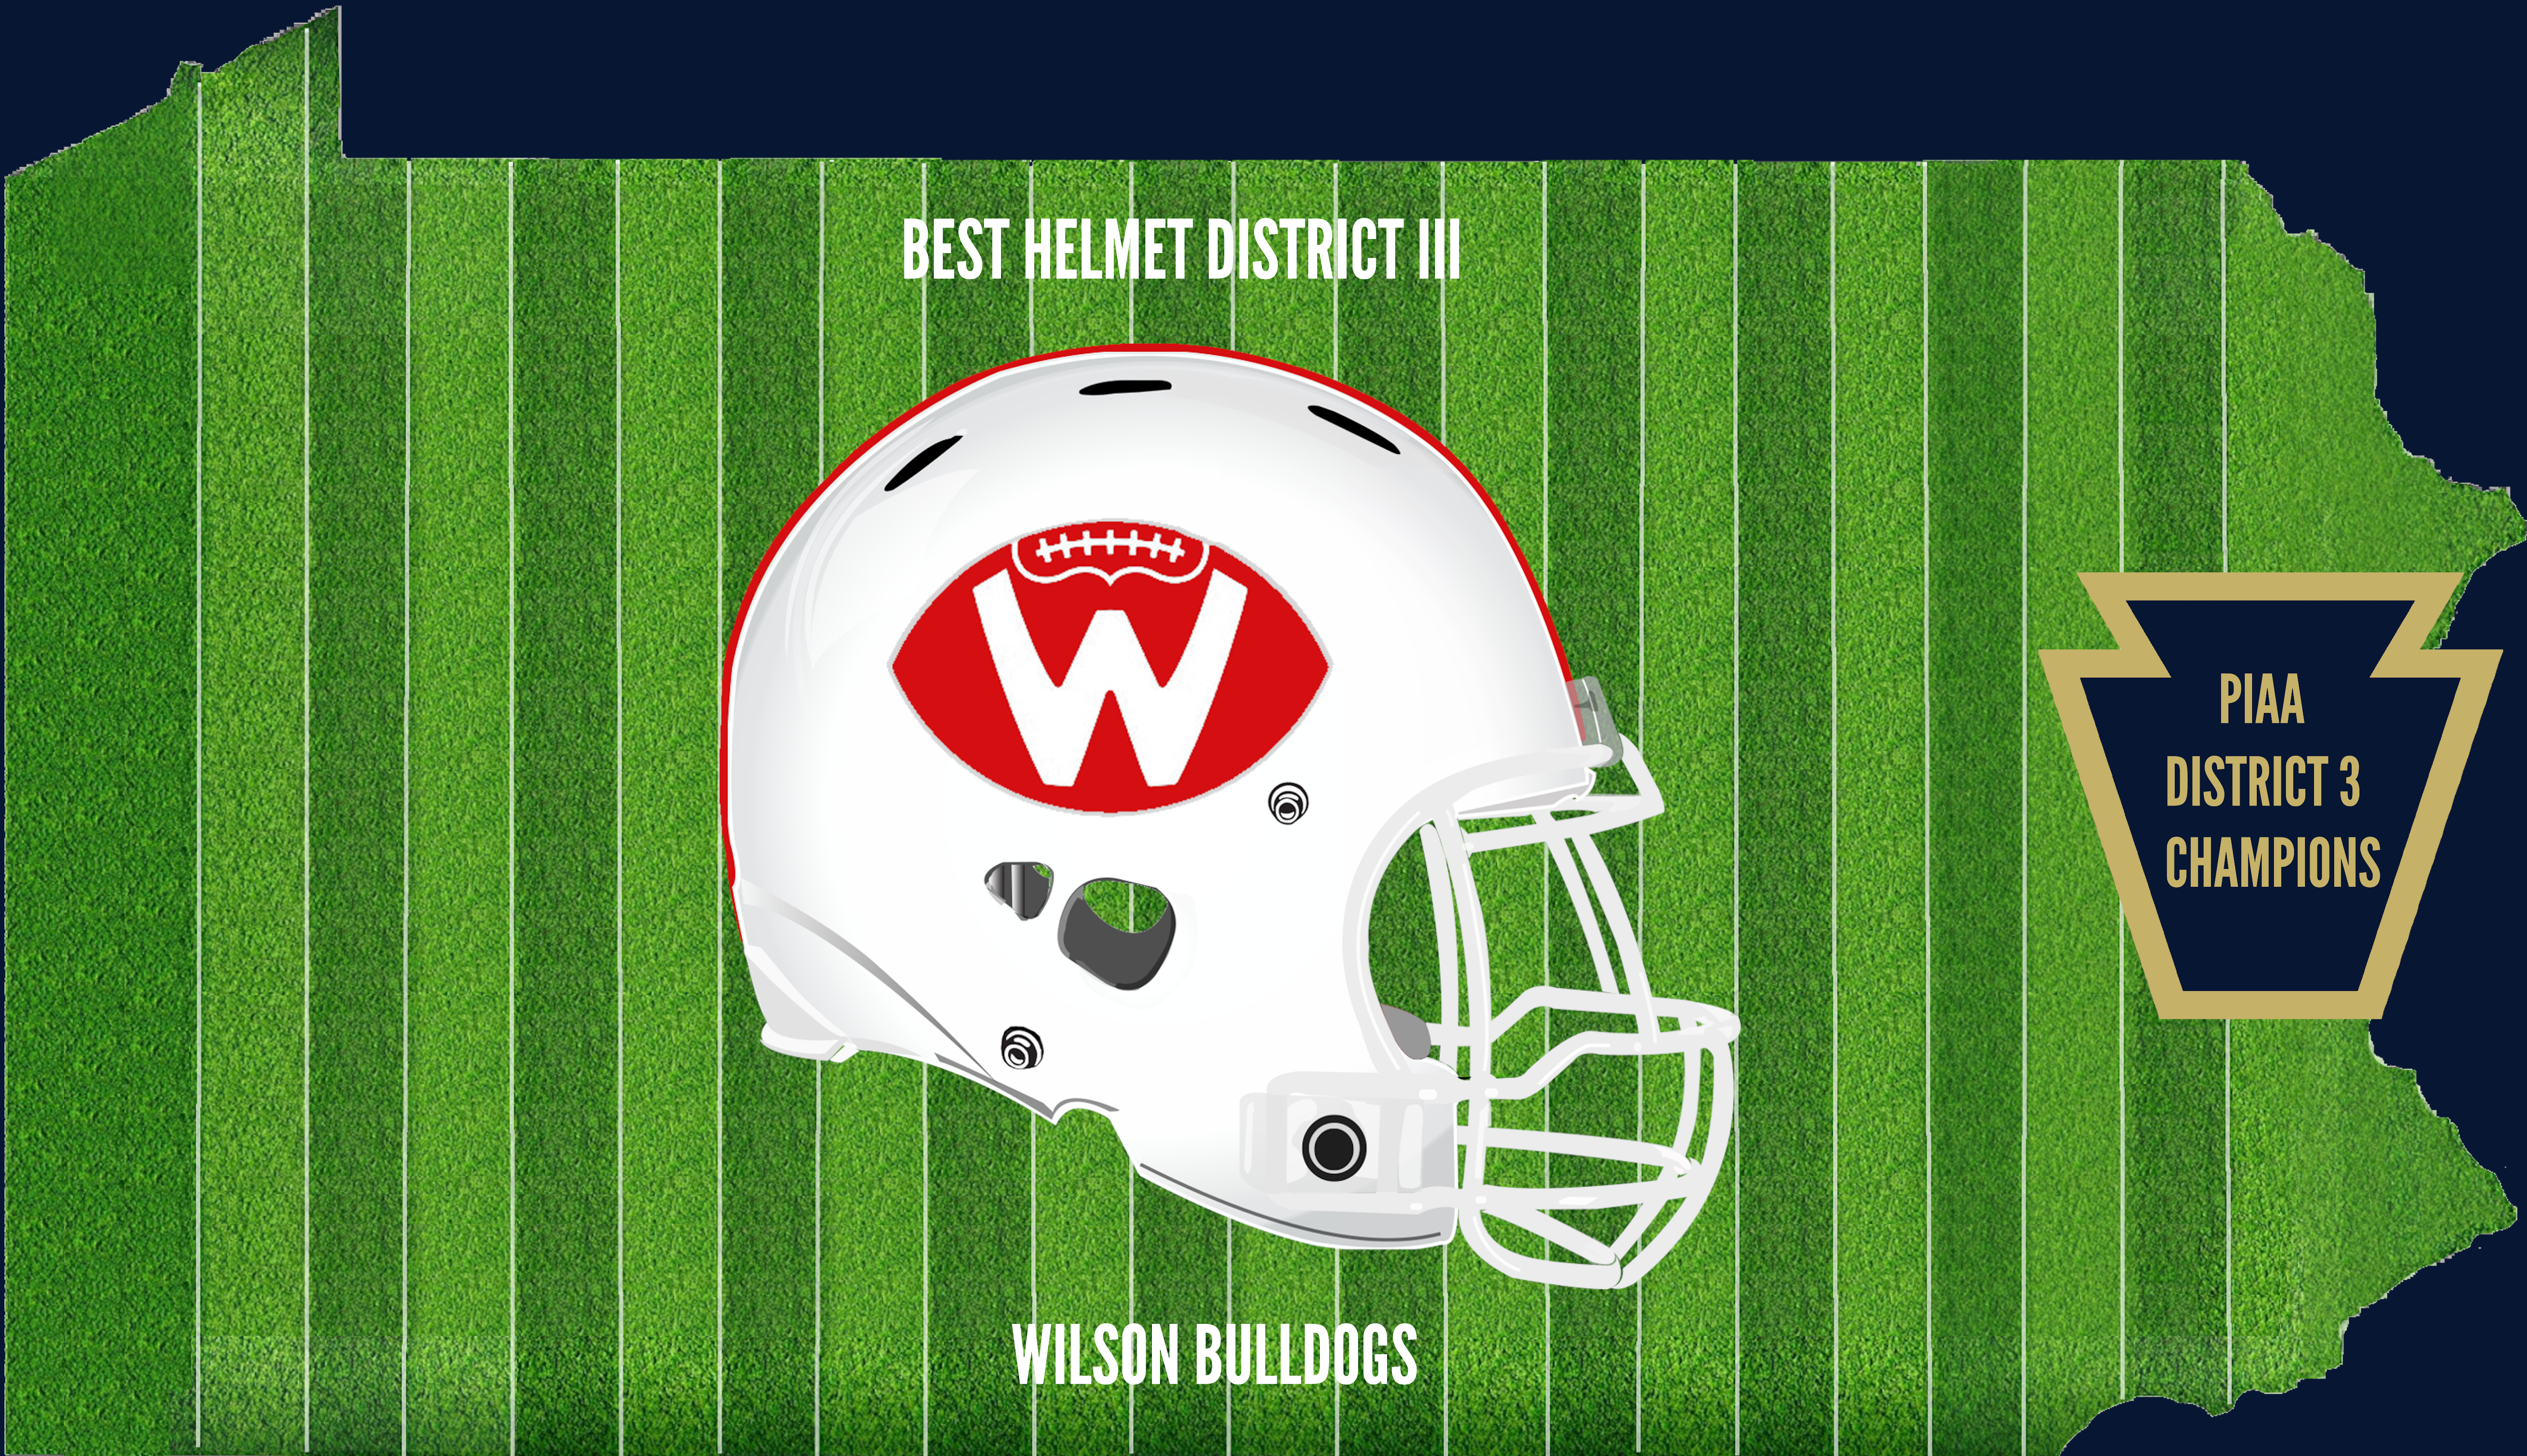 District-3 Champion Helmet